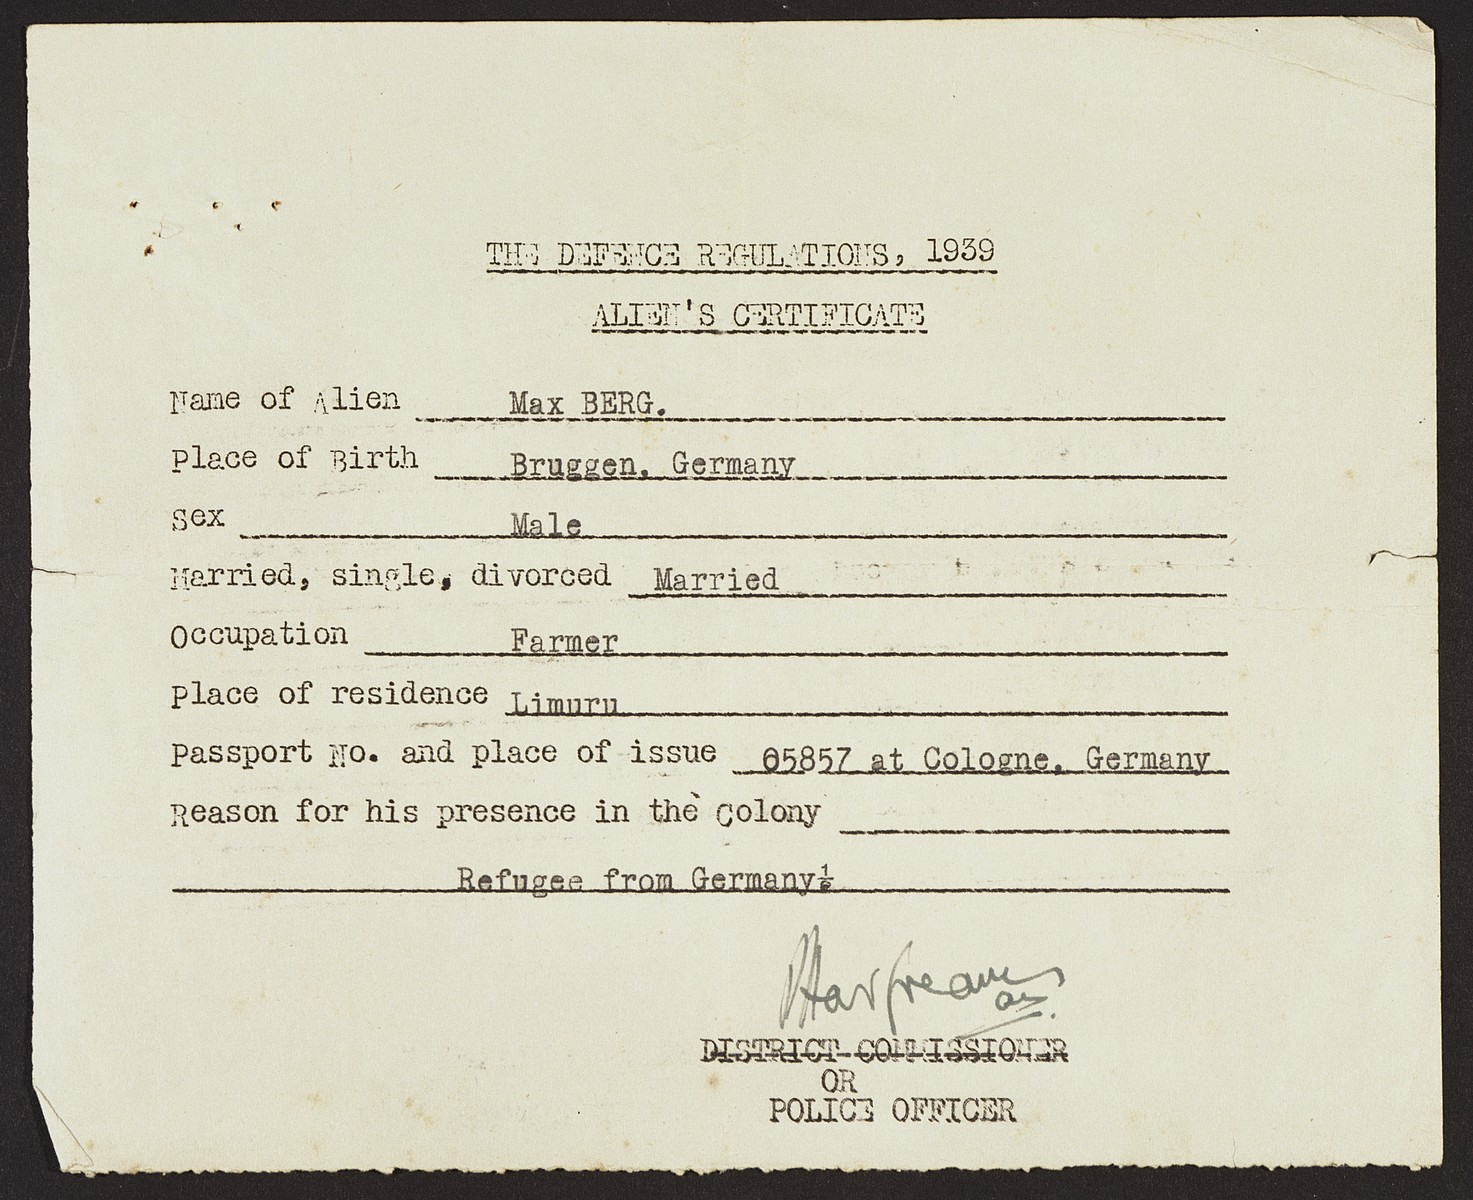 Alien Registration Certificate Issued To Jewish Refugee Max Berg By